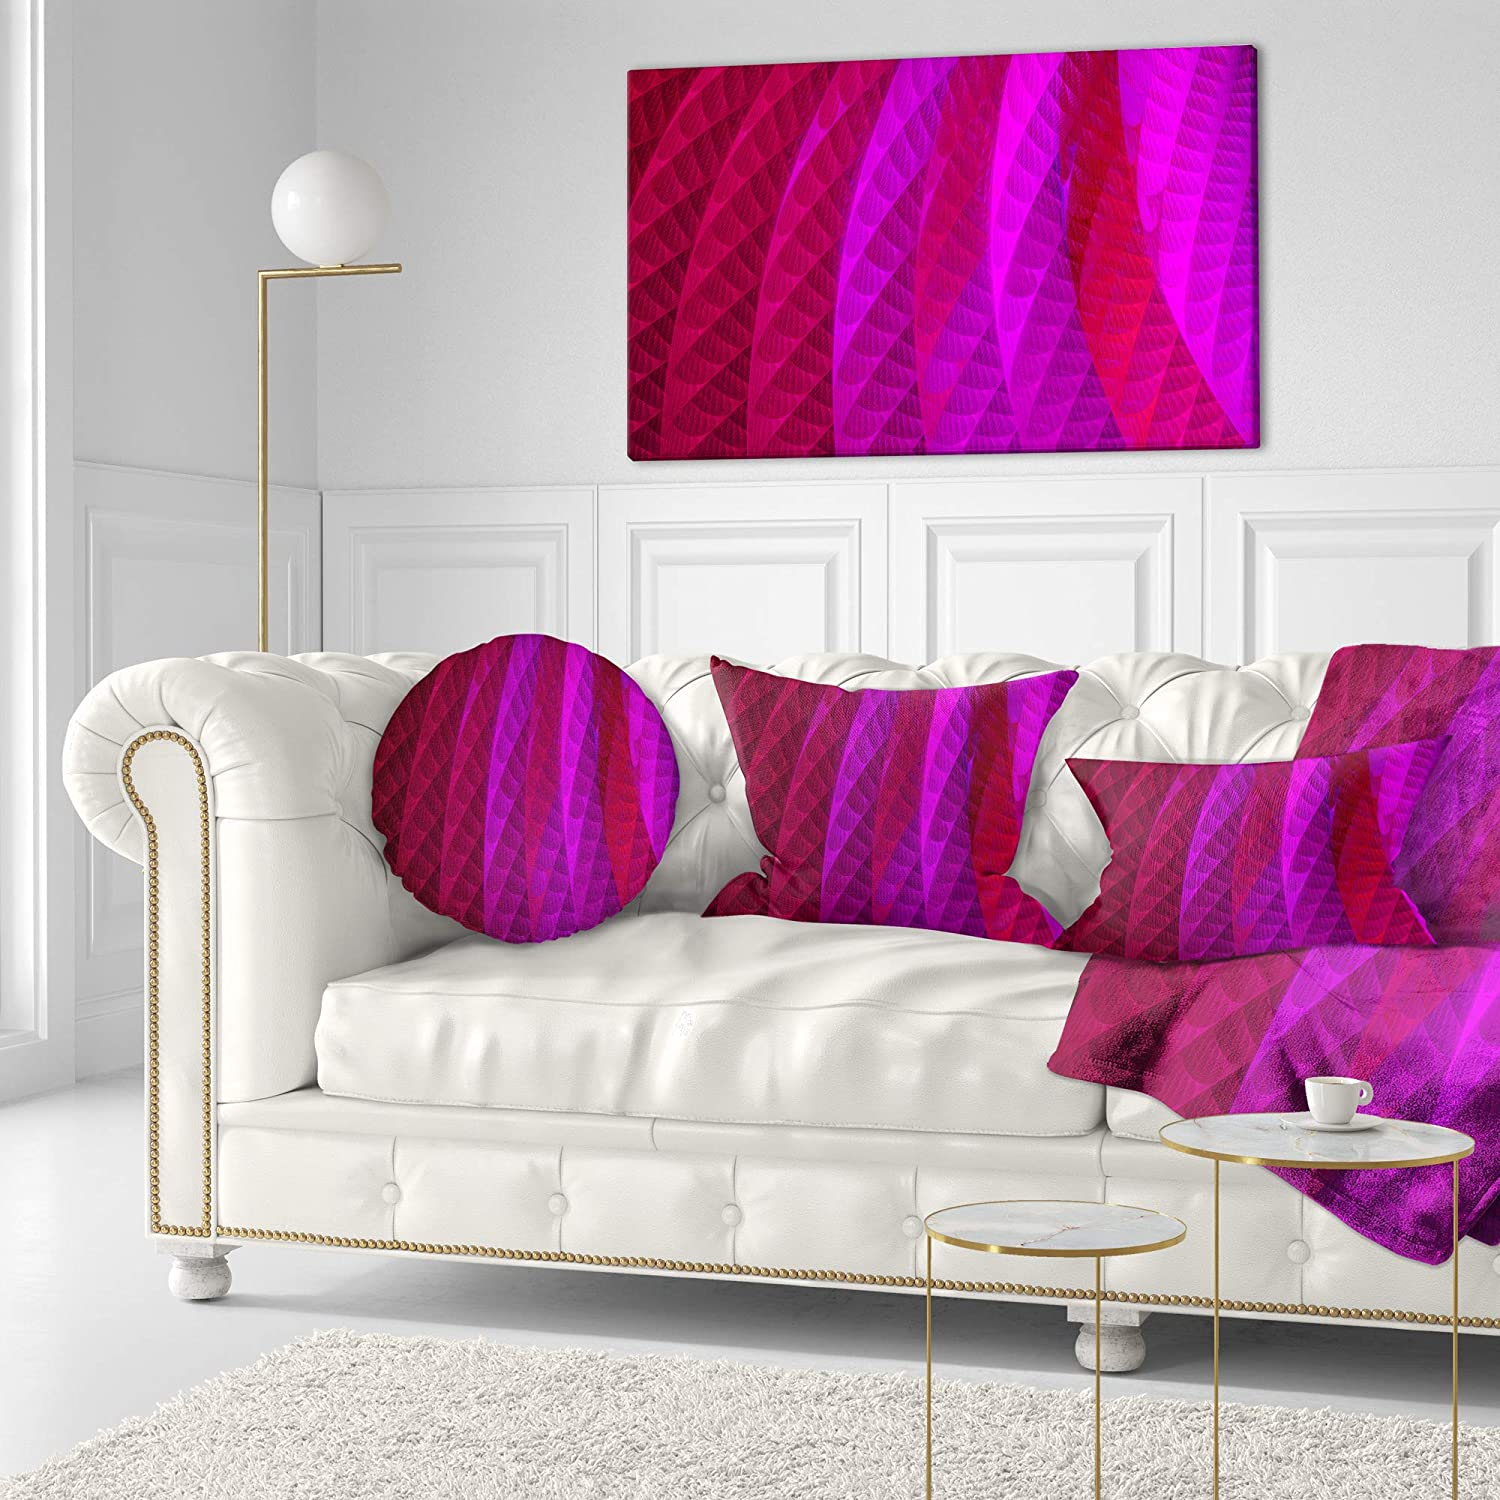 Insert Printed On Both Side Designart CU15955-16-16-C Layered Pink Psychedelic Design Abstract Round Cushion Cover for Living Room Sofa Throw Pillow 16